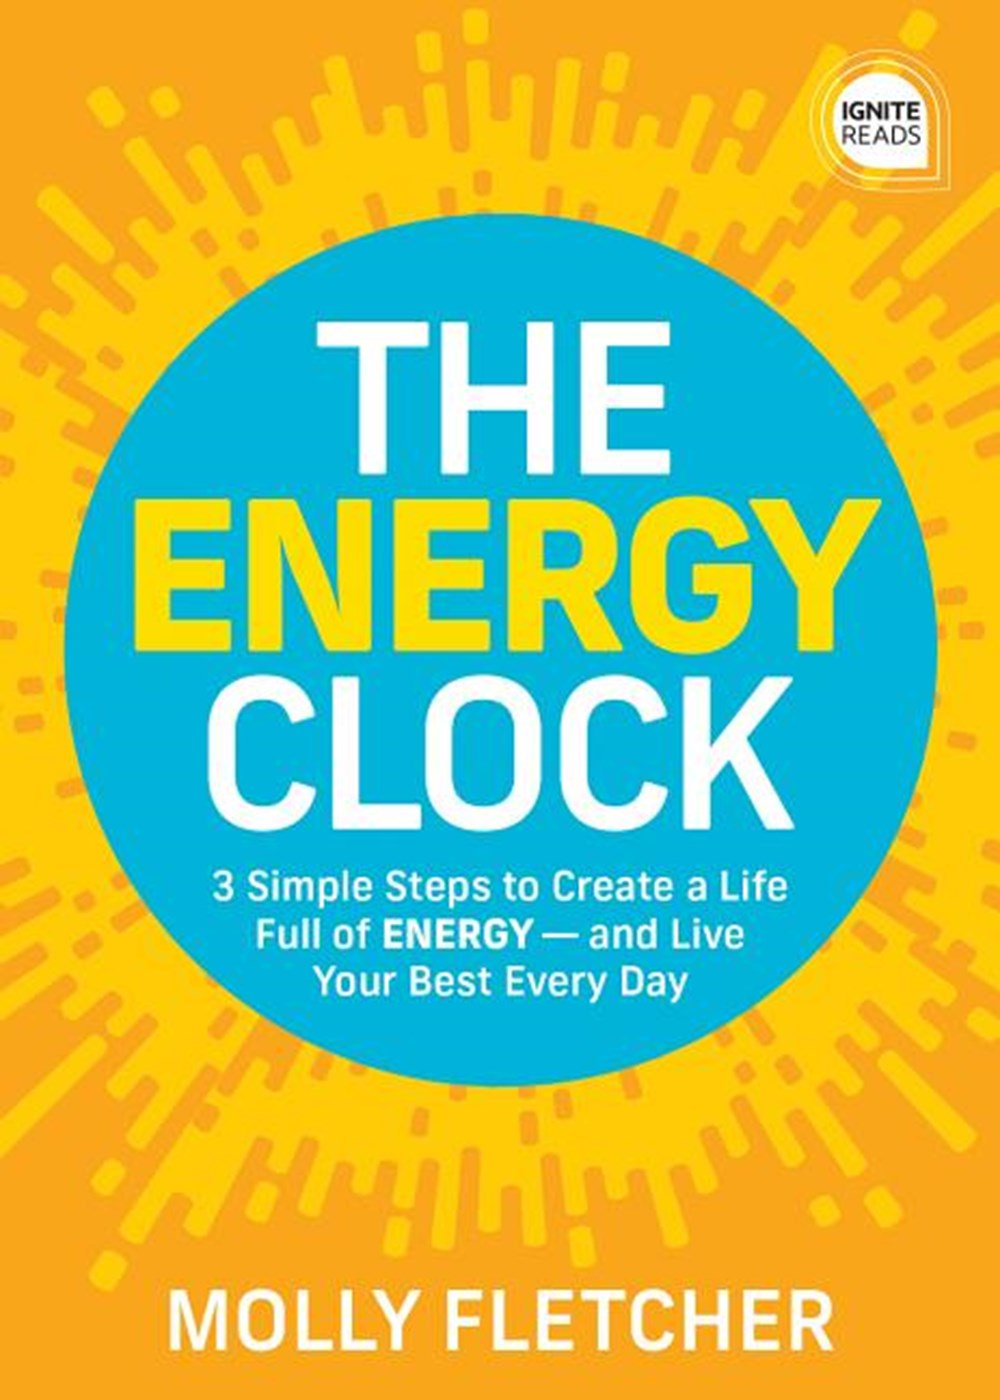 Energy Clock How to Use Your Energy and Resources on What's Important - And Eliminate the Stress of